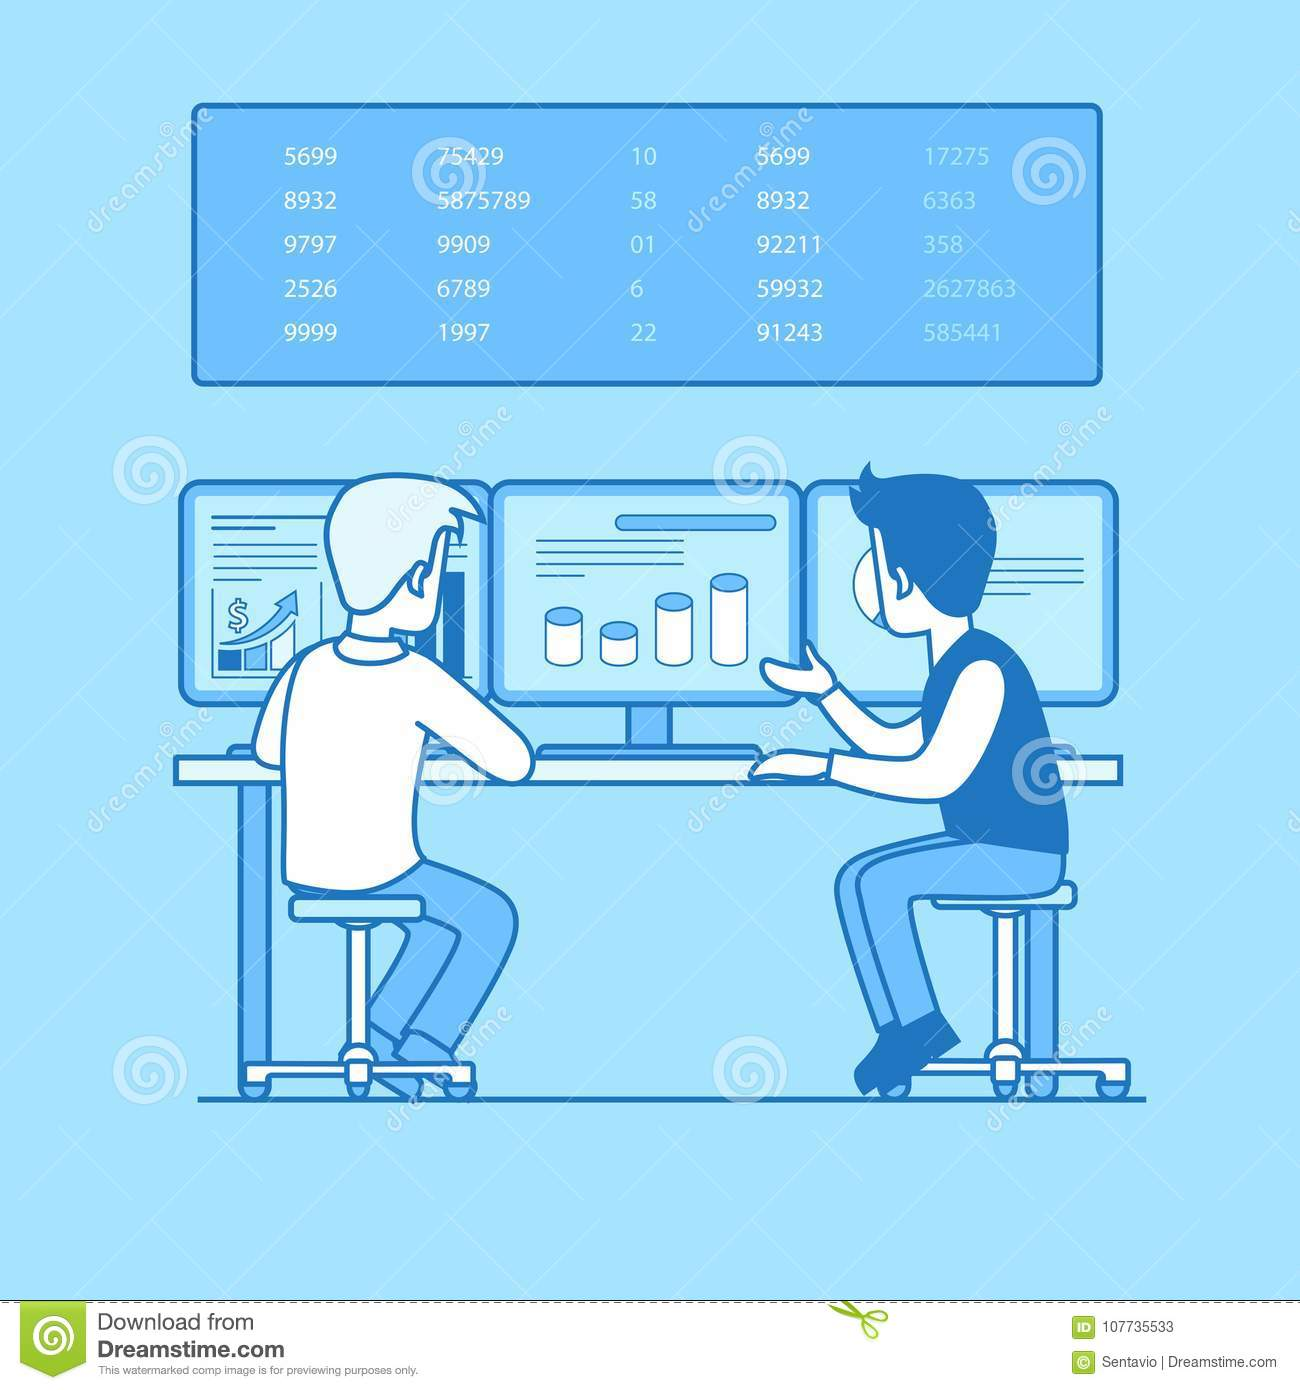 Linear Flat Line Art Business Office Interior Desk Stock Back Of Computer Diagram Two Businessman Rear View Working Graph Chart On Pc Screen Board With Numbers Businesspeople Illustration